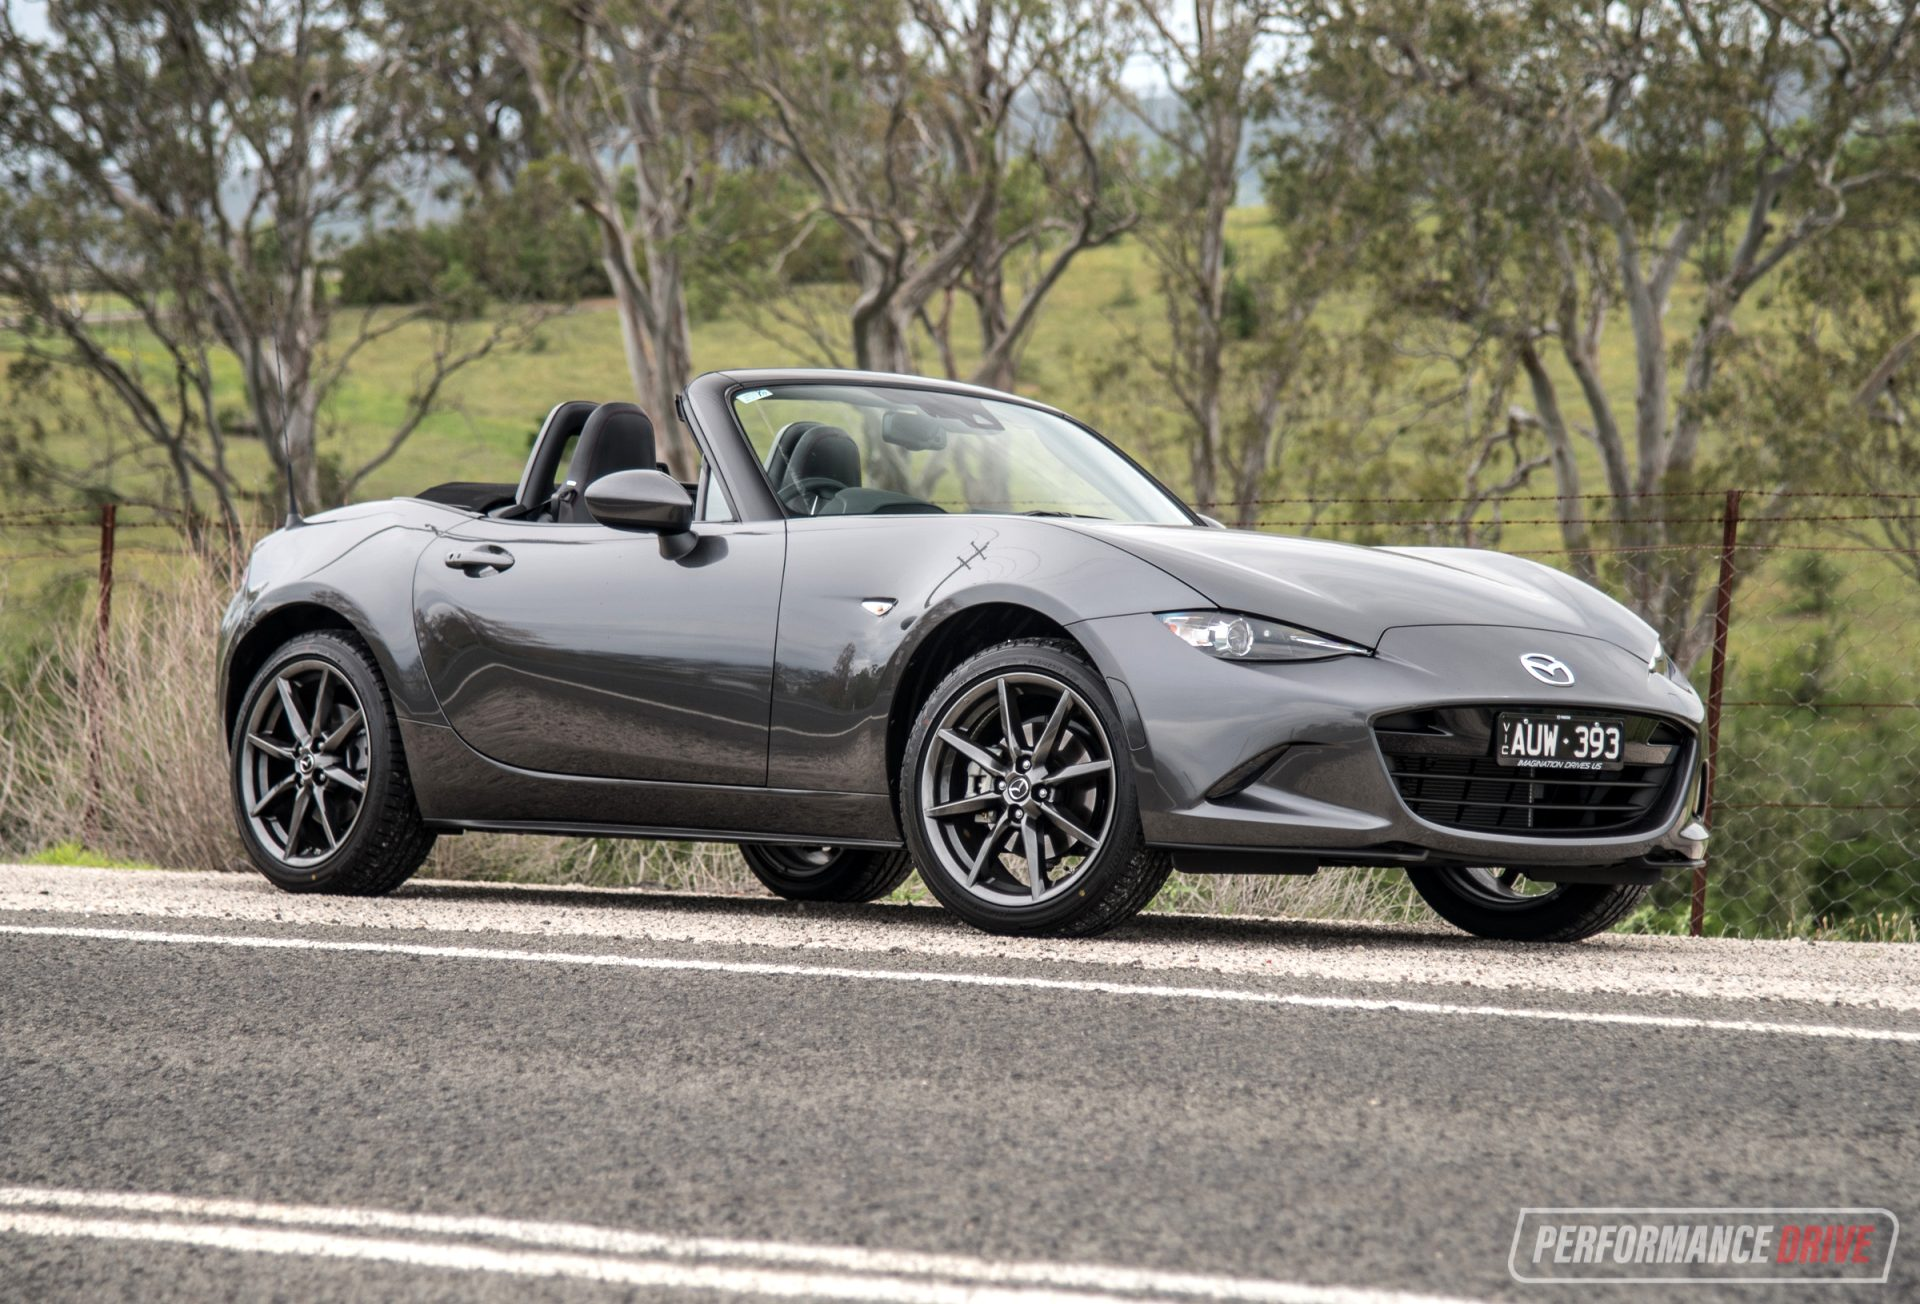 2021 mazda miata zero to 60 Release Date and Concept